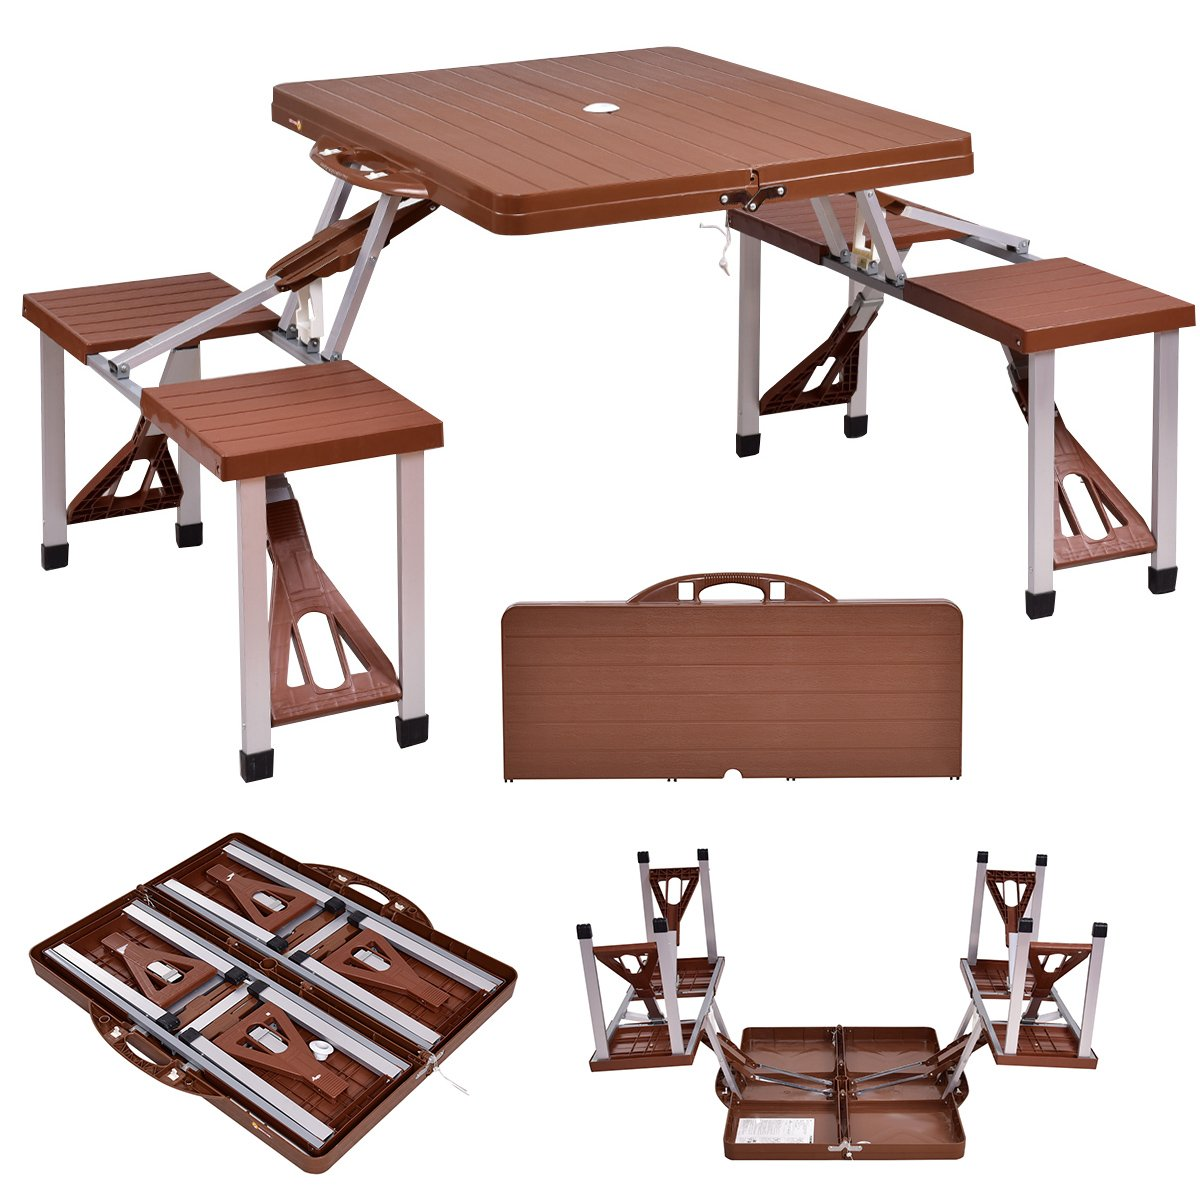 Giantex Portable Folding Picnic Table with Seating for 4 Garden Party Camping Time Design (Brown) by Giantex (Image #2)